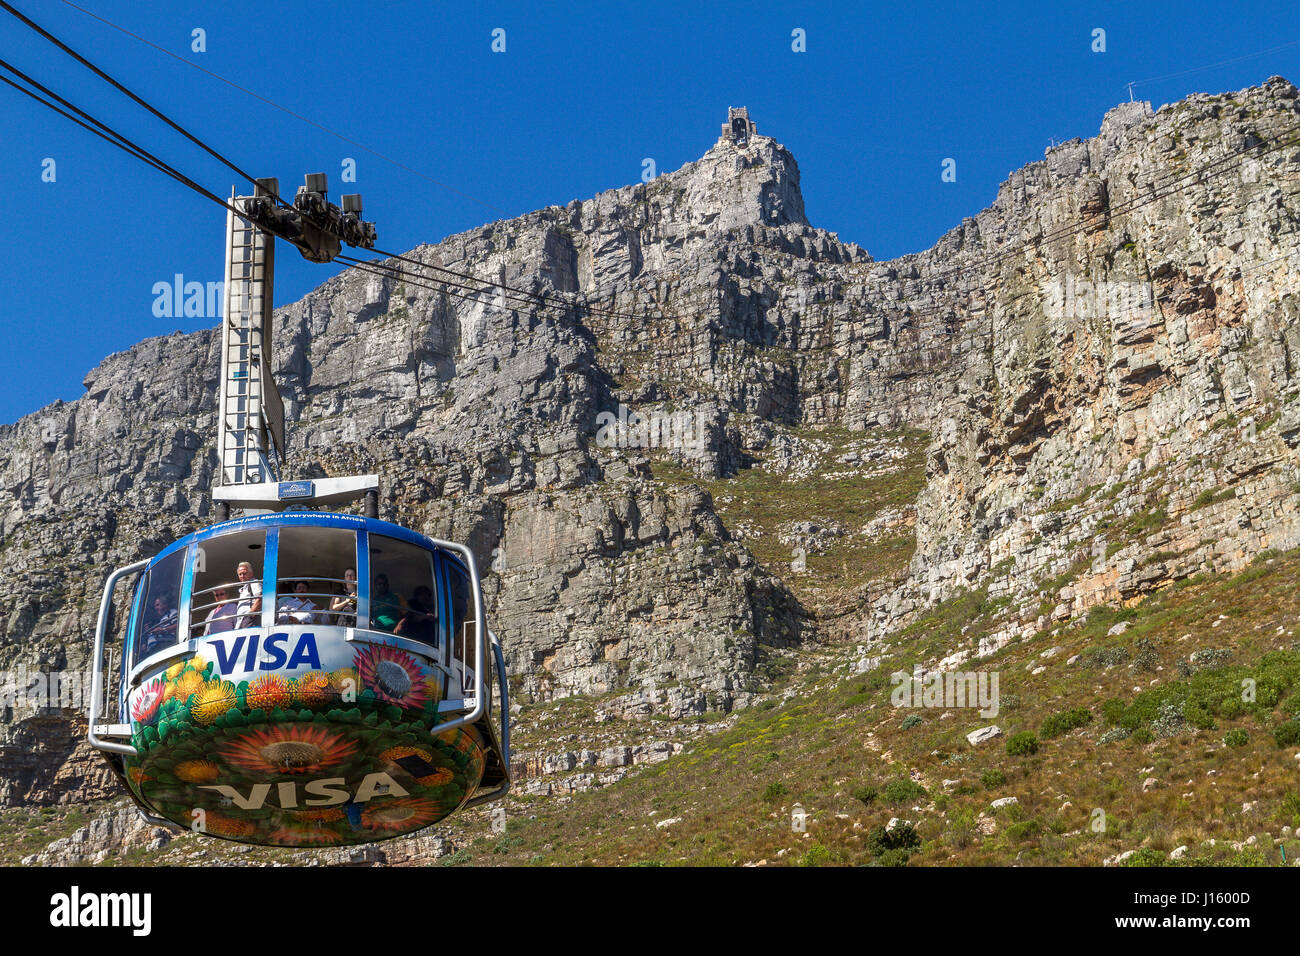 Table Mountain Aerial Cableway cable car descends from the top of Table Mountain, a prominent landmark overlooking - Stock Image